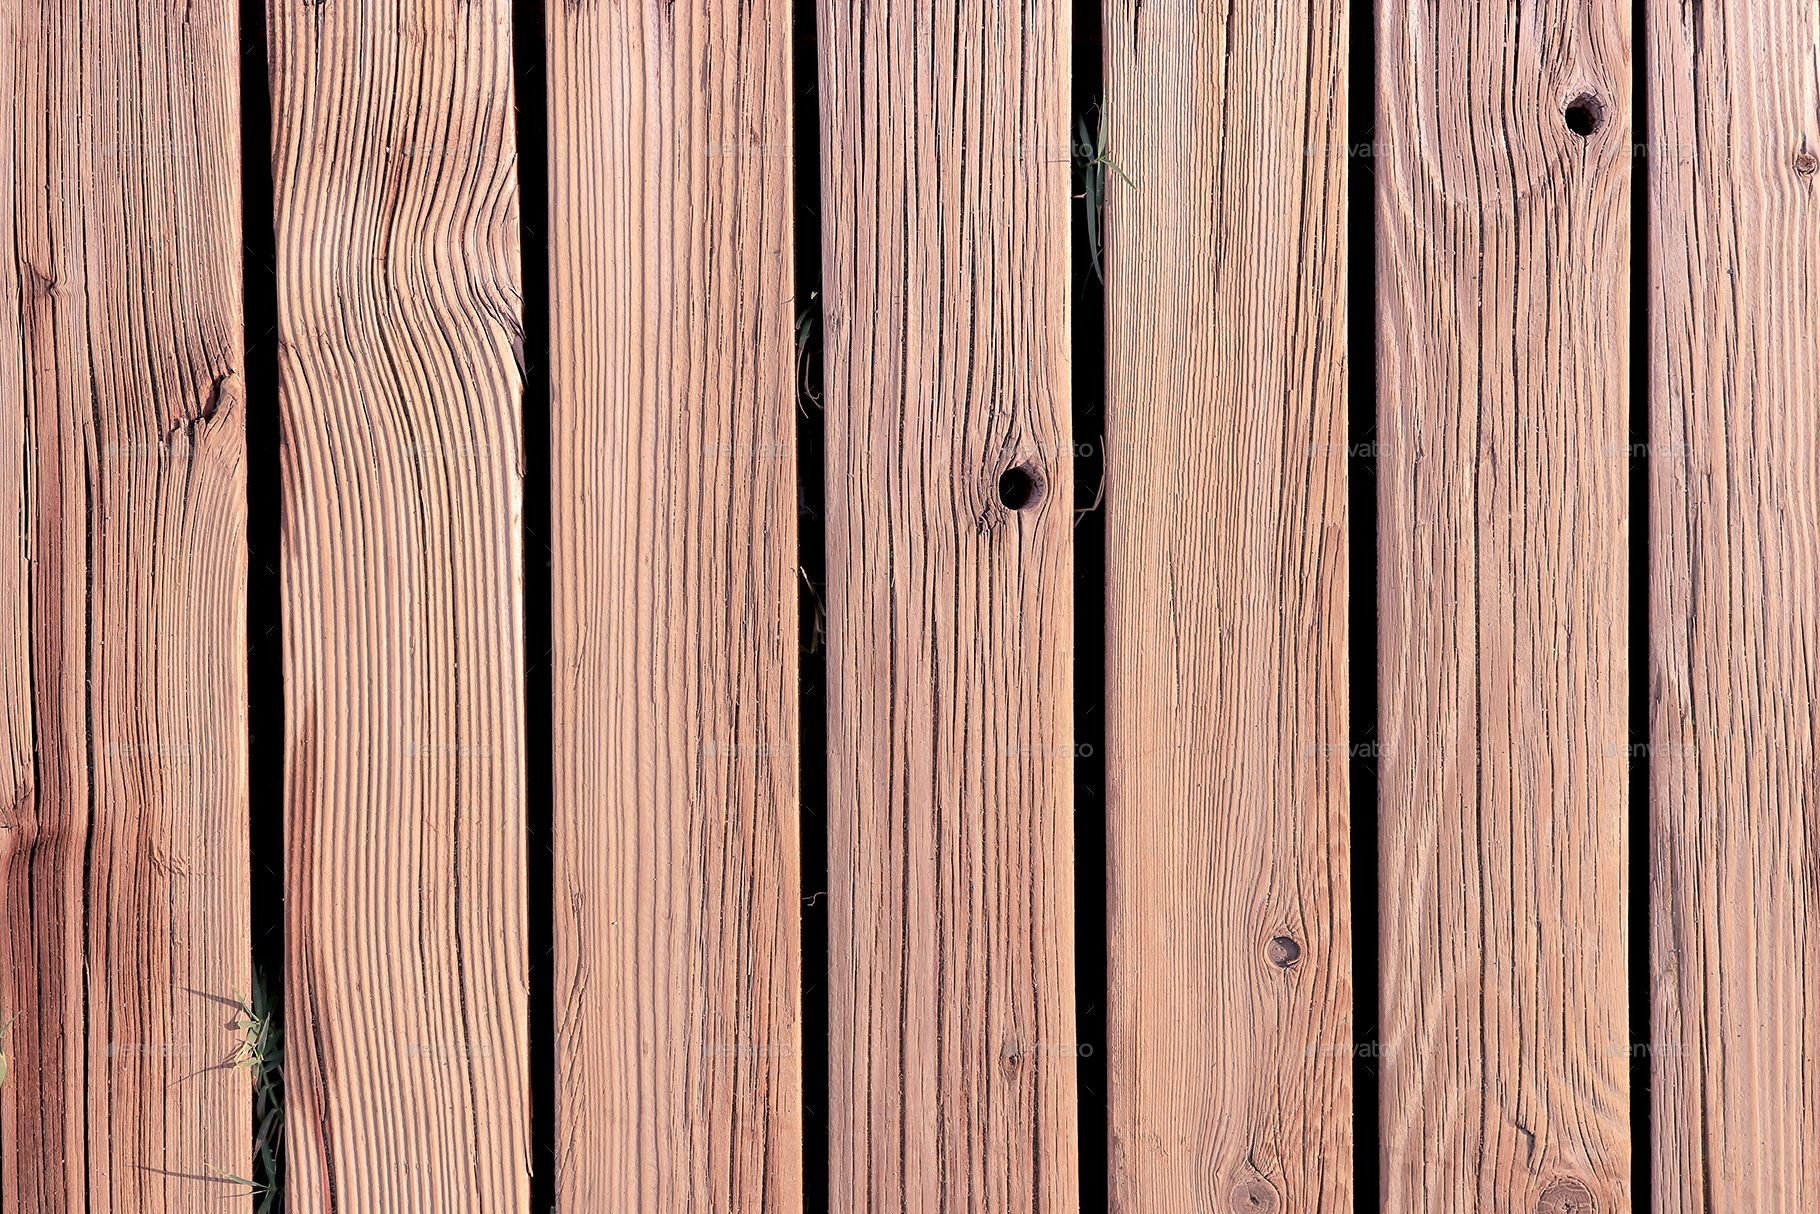 30 Wood Planks Textures Wood Plank Texture Poster Design